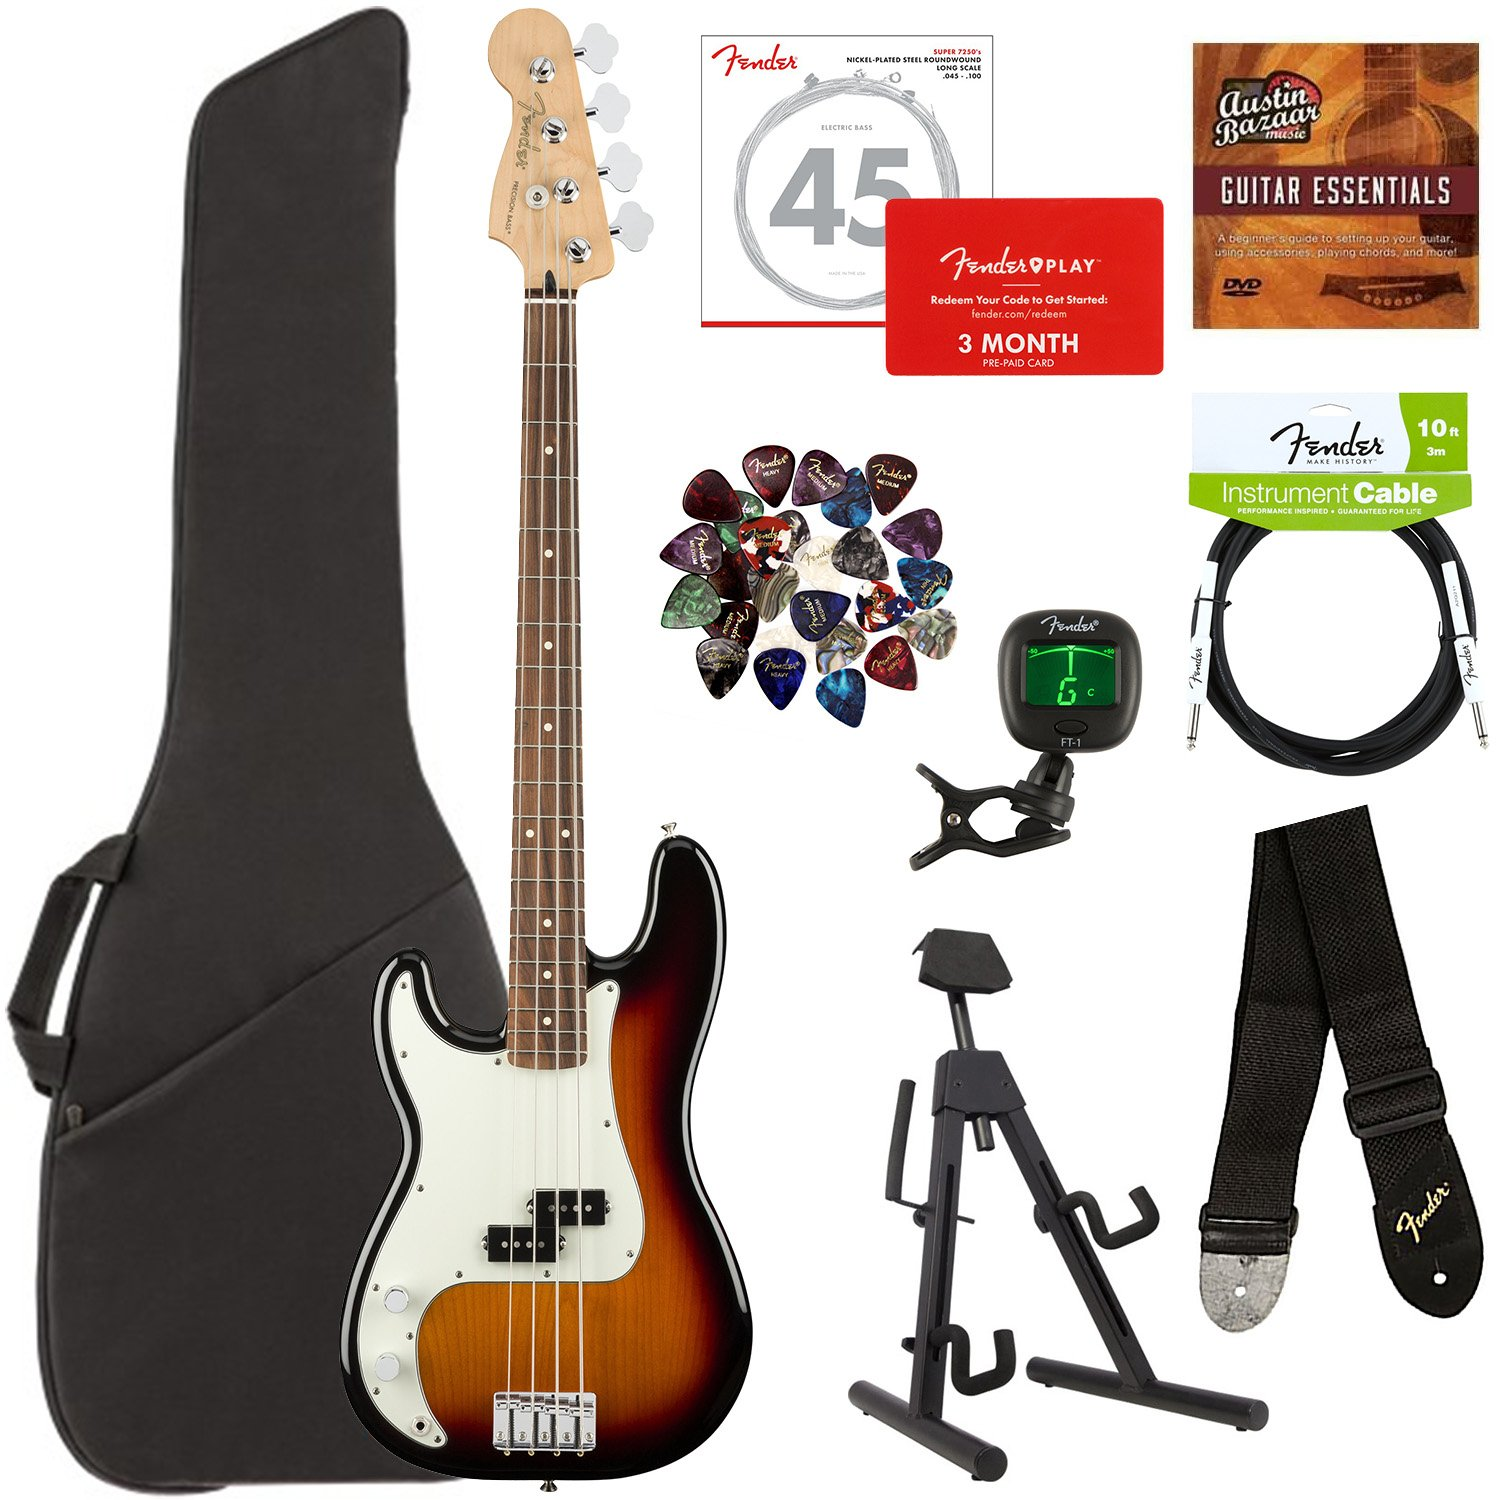 Fender Player Precision Bass Pau Ferro Left Handed 3 Accurate Tone Control Color Sunburst Bundle With Gig Bag Stand Cable Tuner Strap Strings Picks